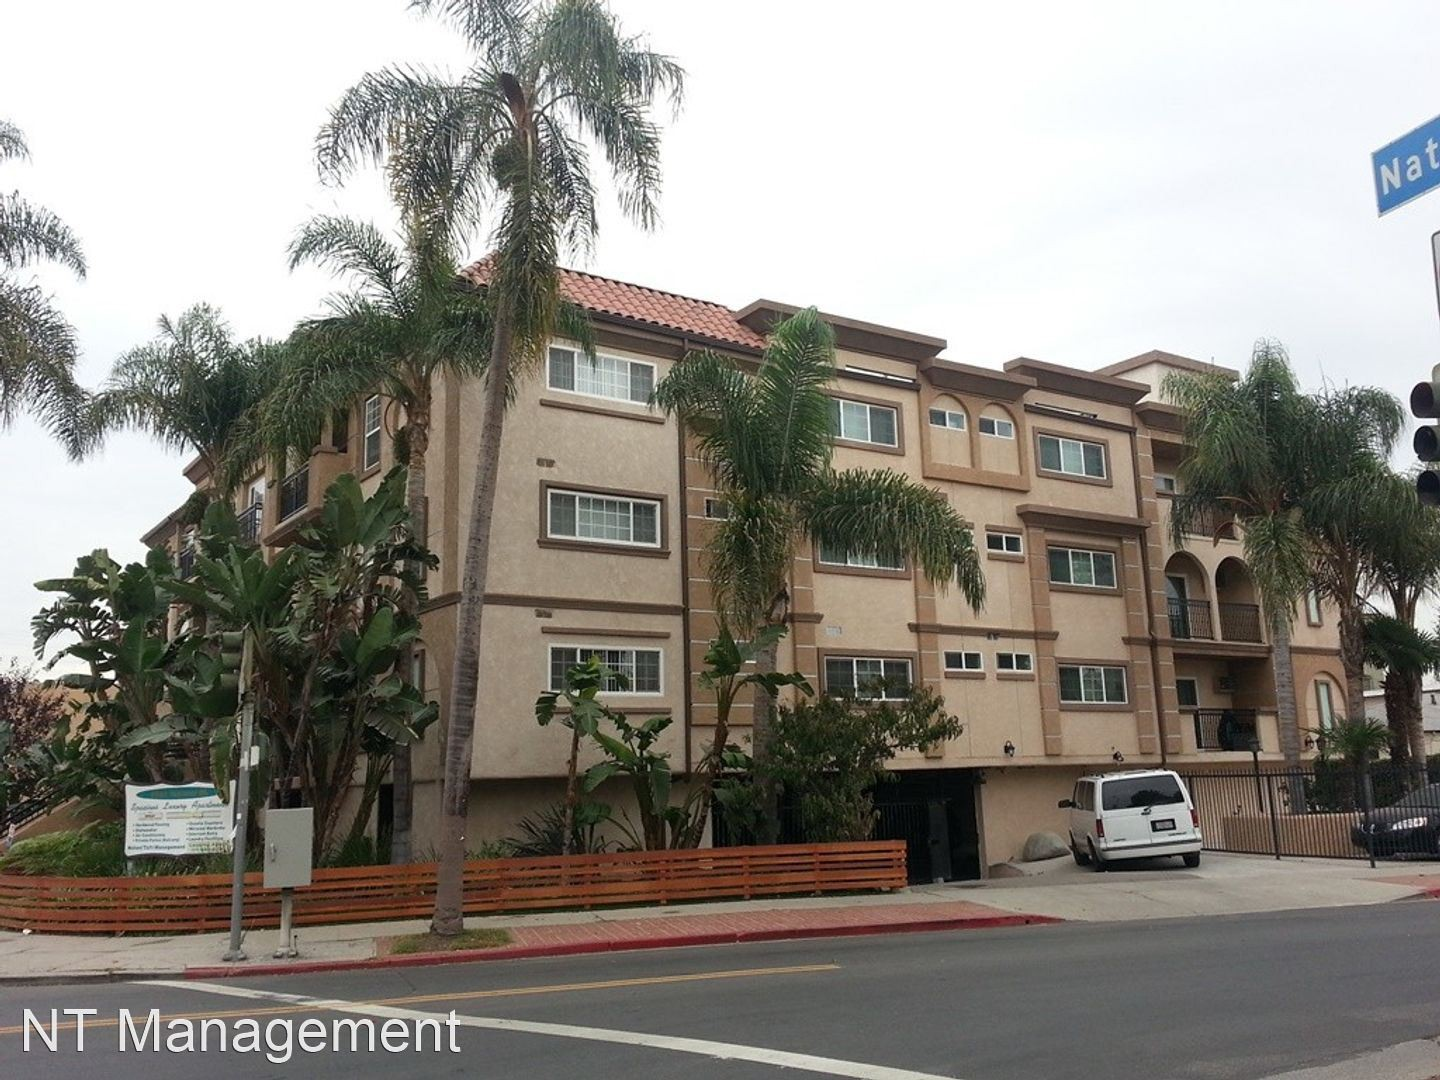 9344 National Blvd. photo